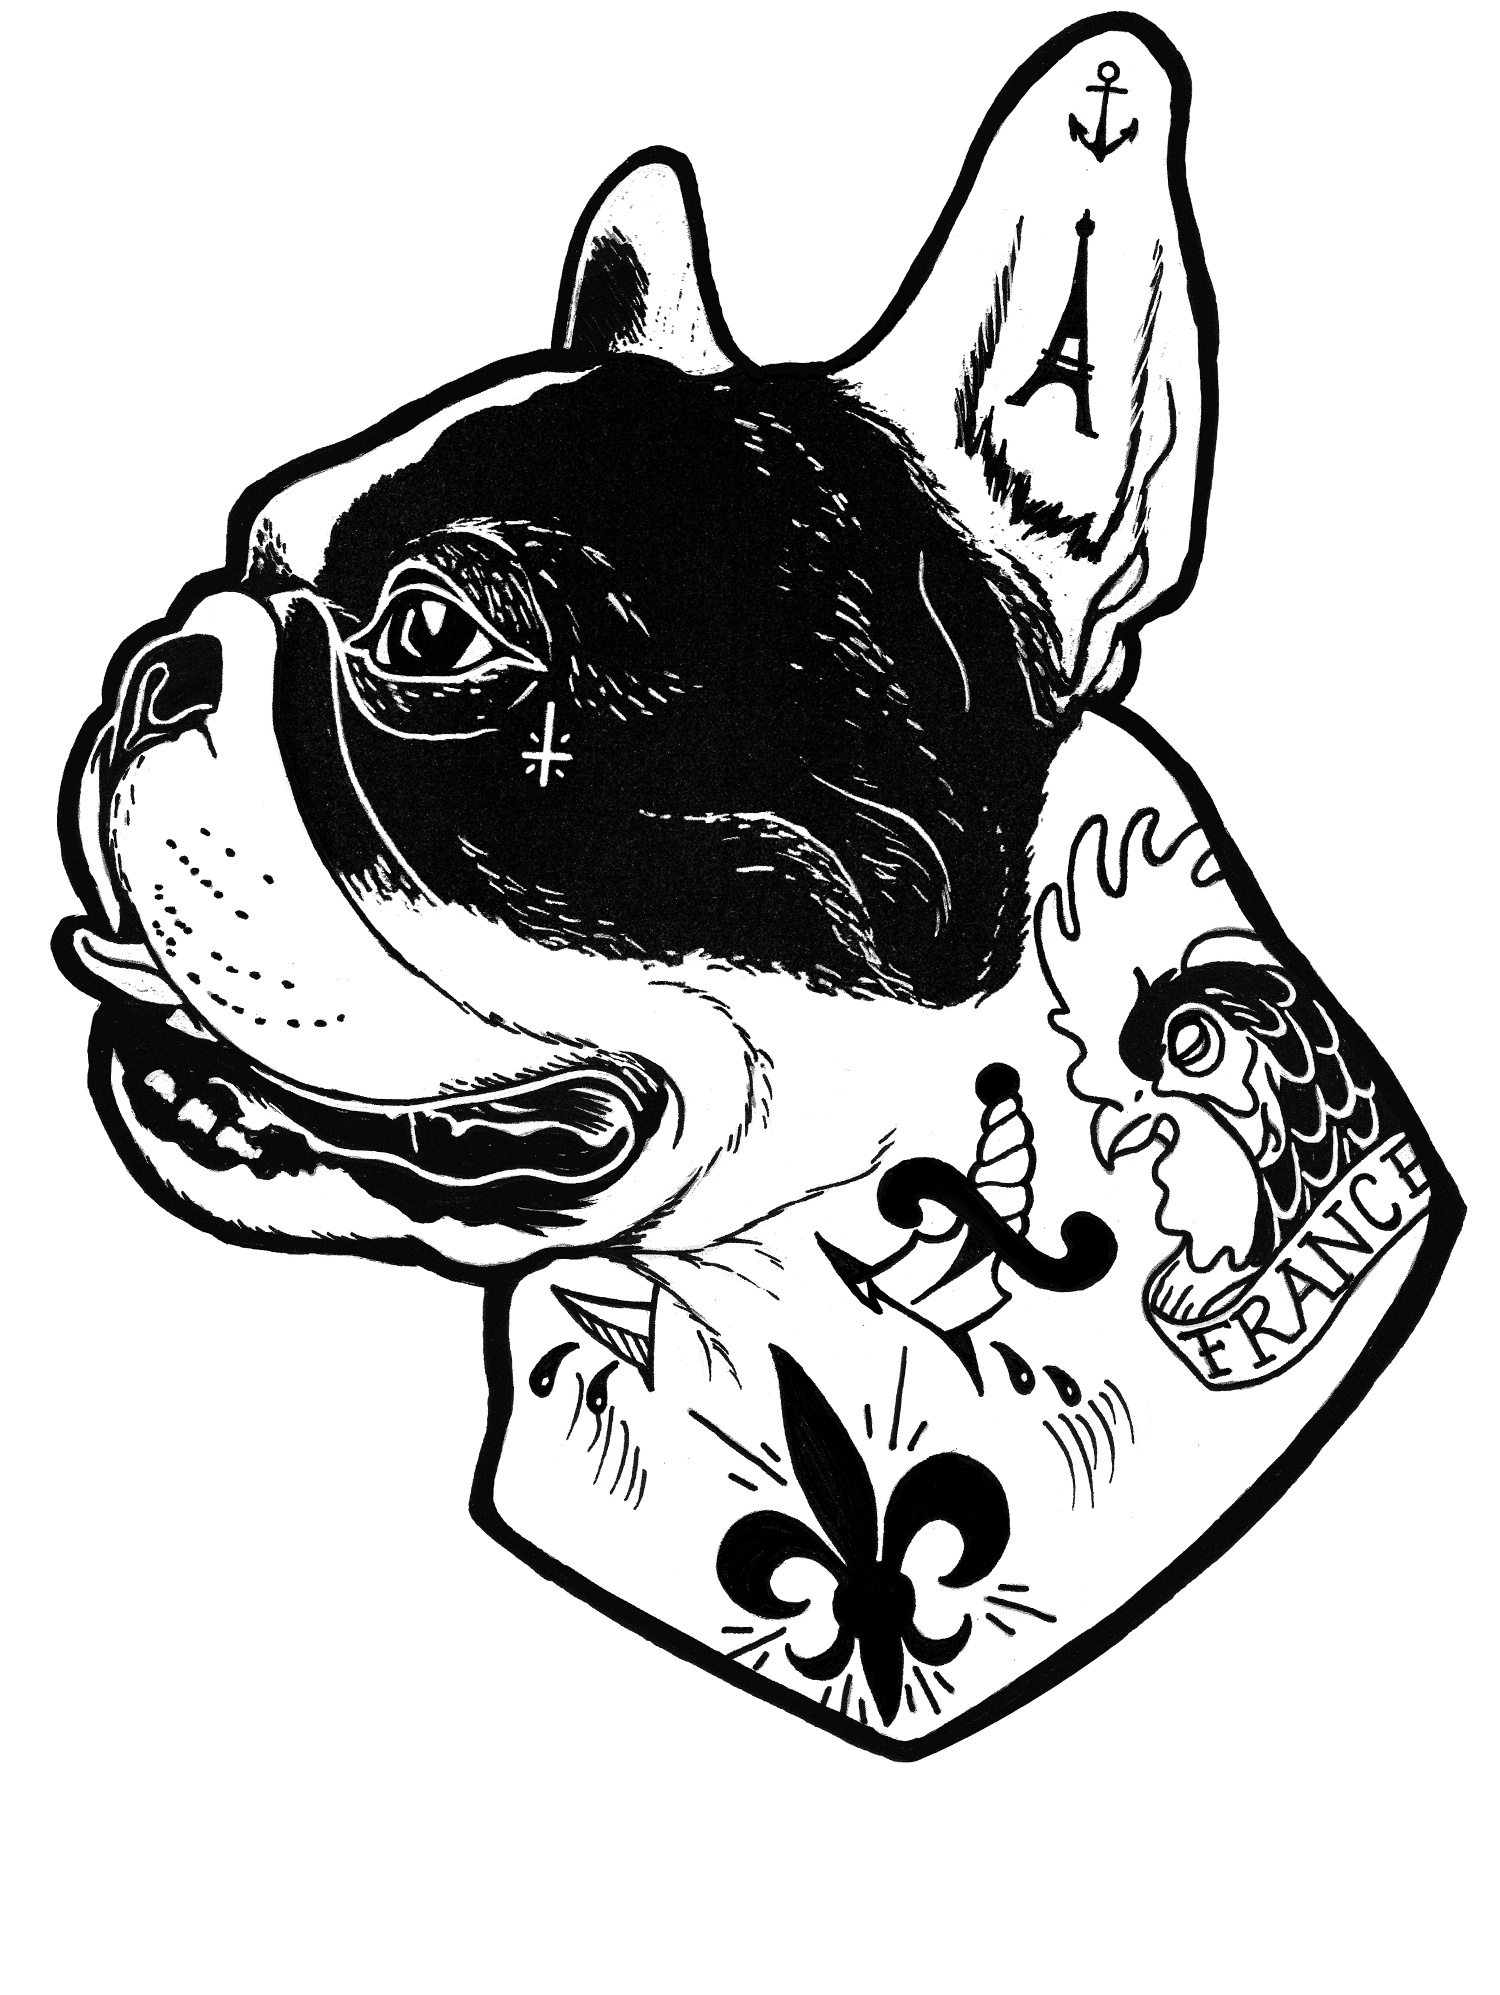 jpg royalty free Tattooed cheryl hubbard pinterest. Vector bulldog french